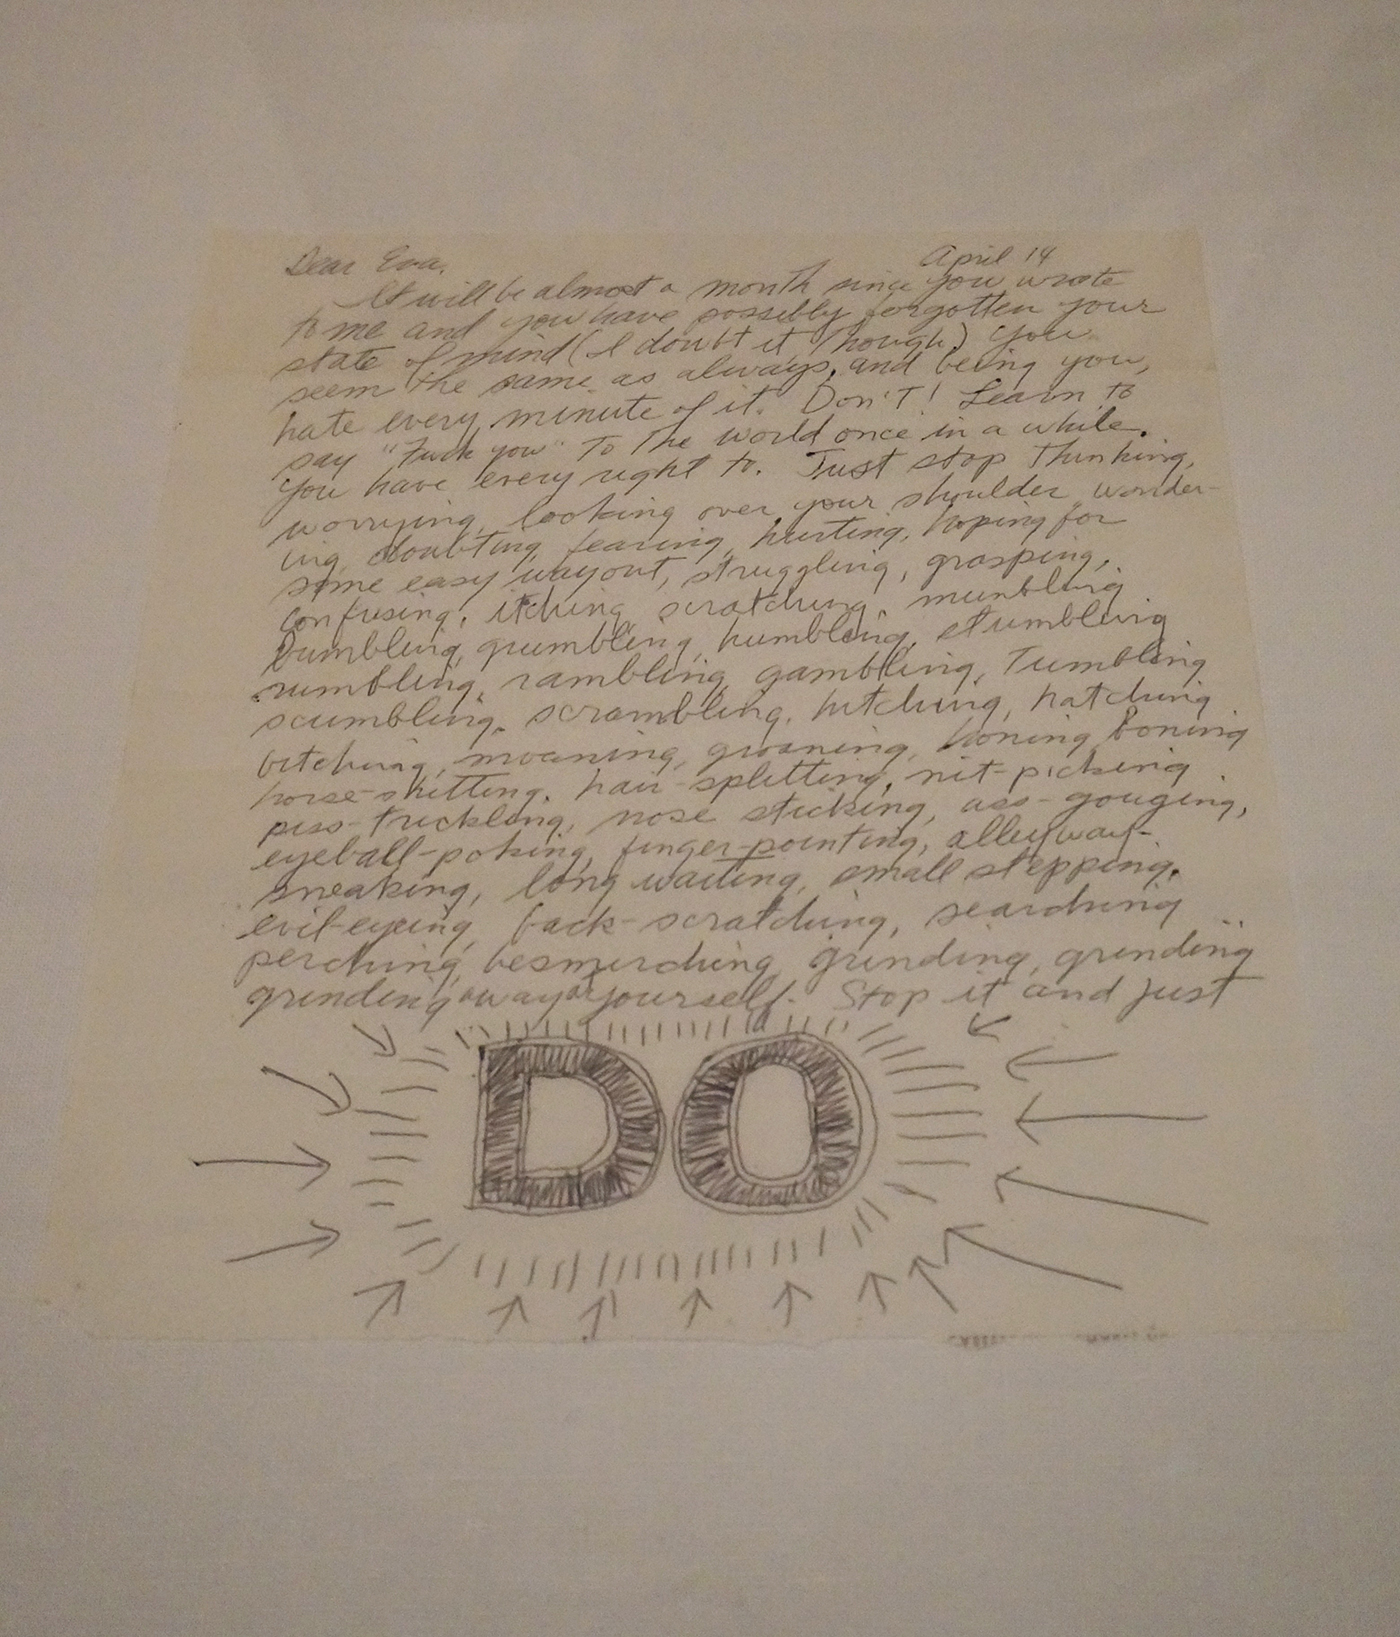 A page from Sol LeWitt's 1965 letter to Eva Hesse (click to enlarge)